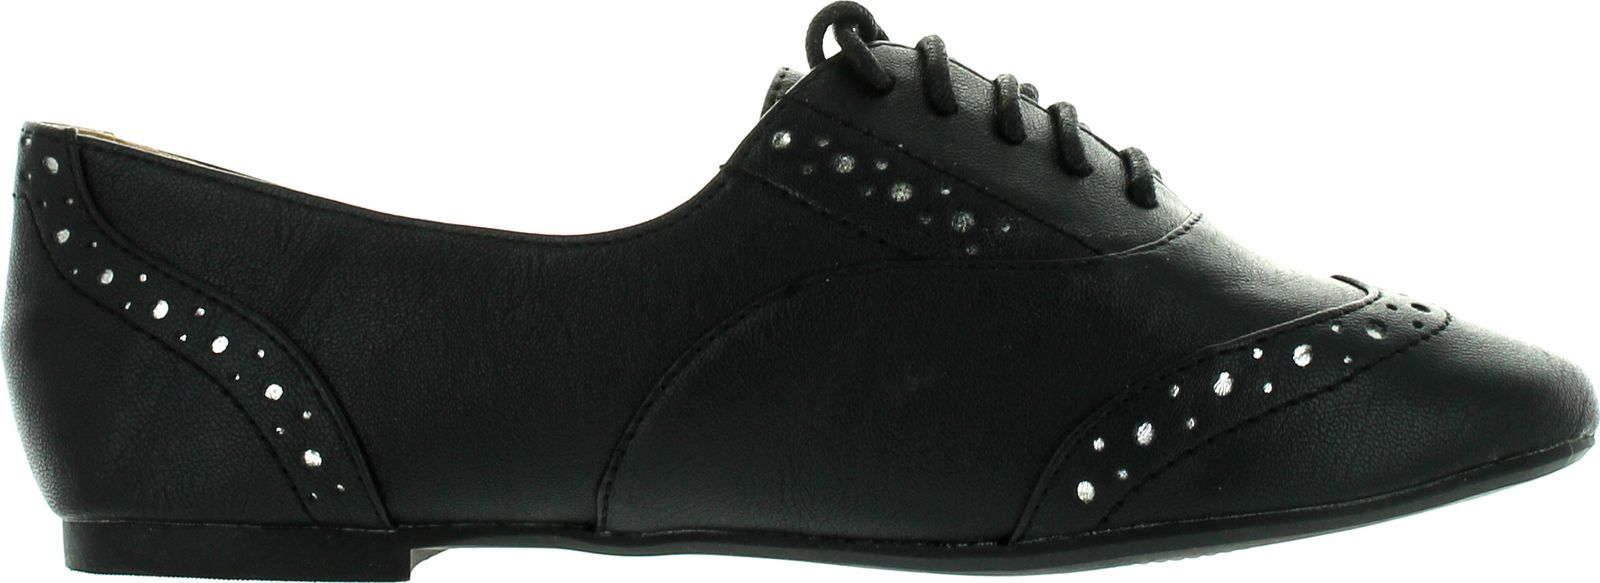 Restricted Femme Savoy Oxford Oxford Oxford Flats chaussures 55f782